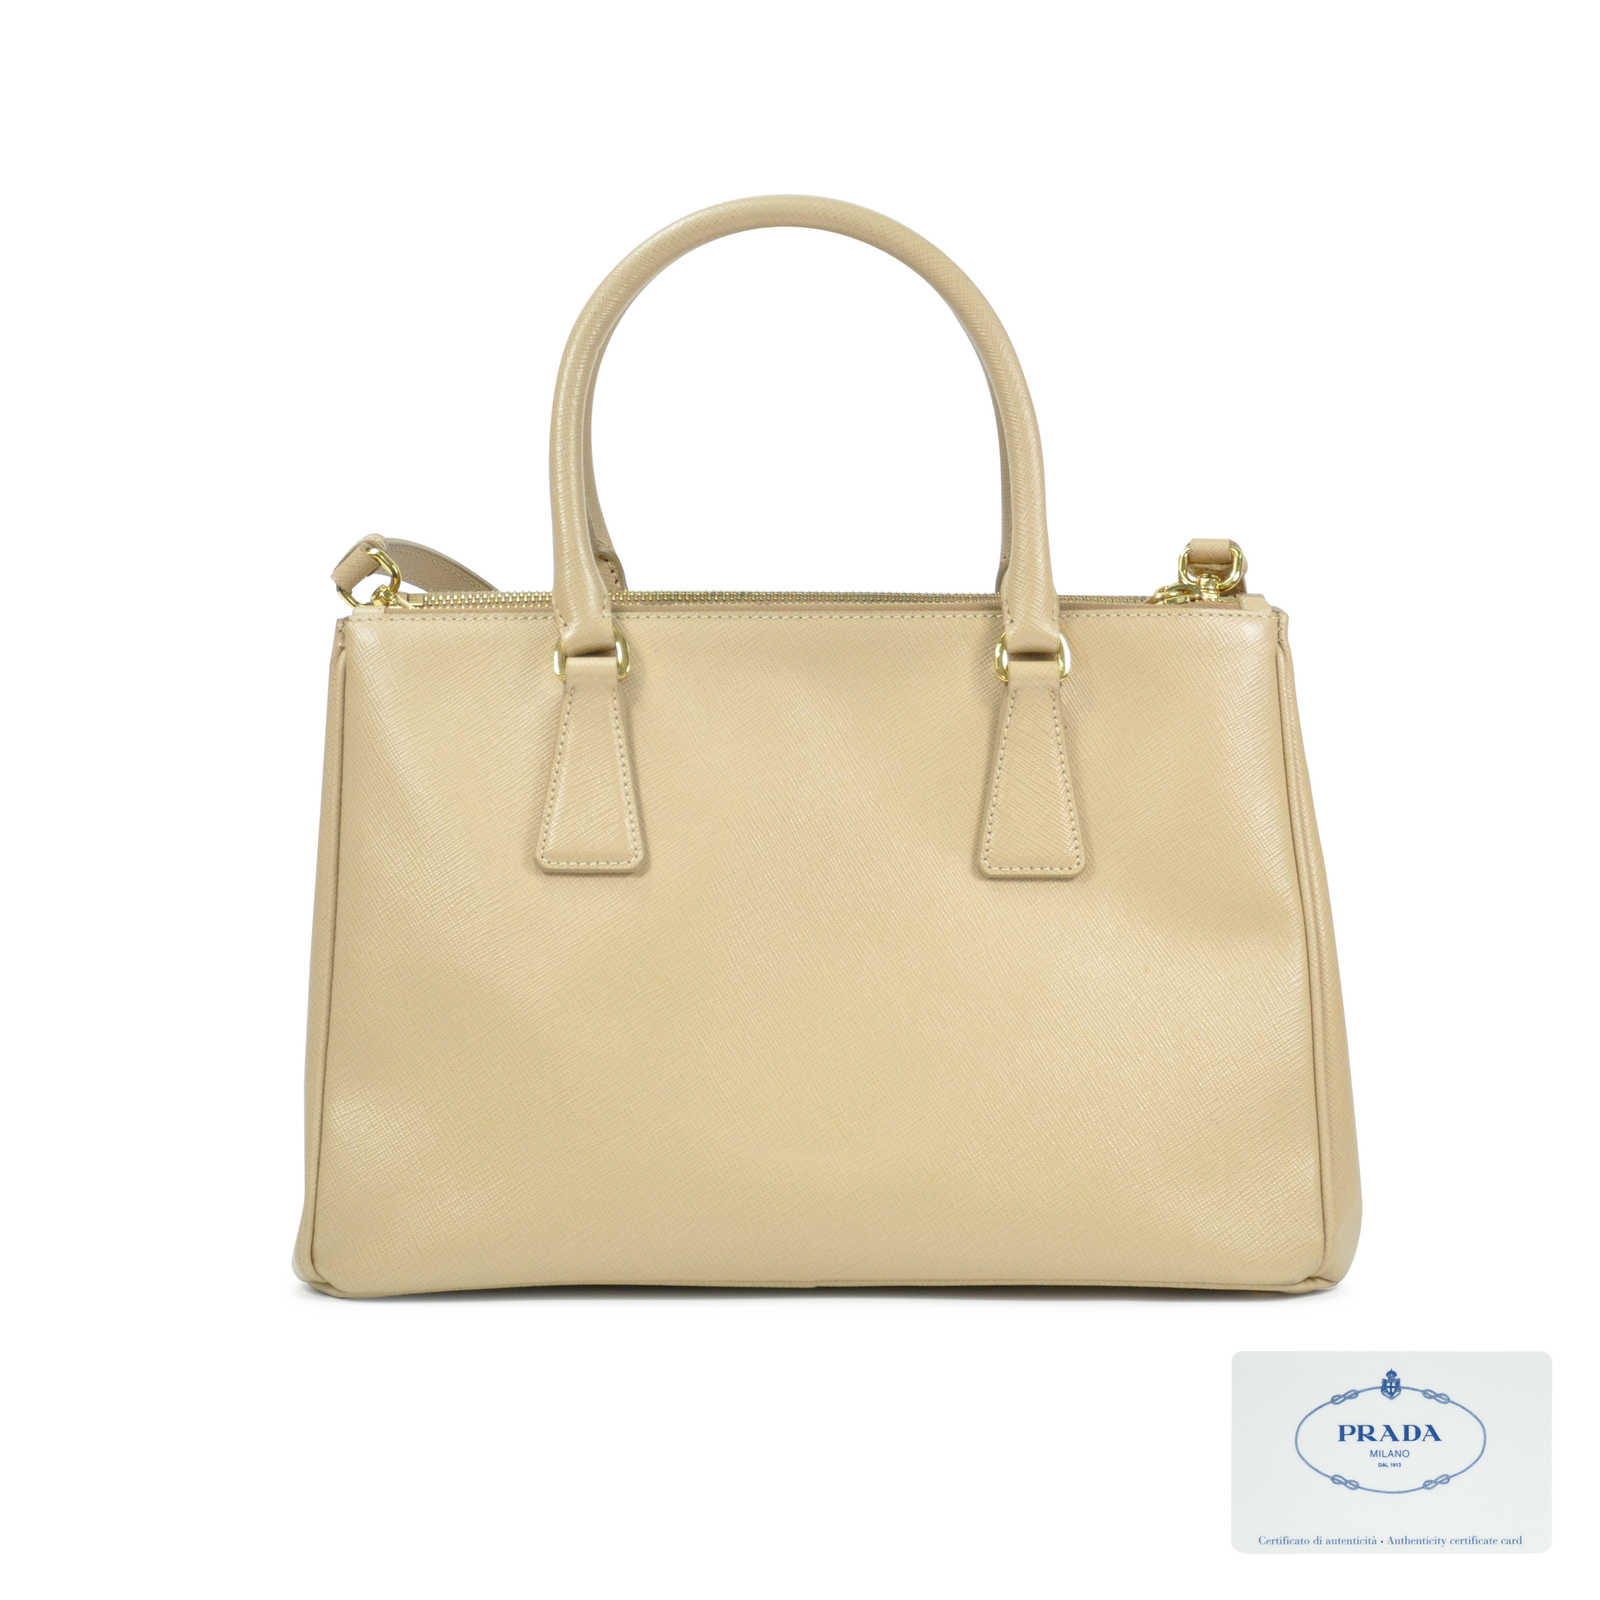 a0b03b2f7a29 ... tote yellow leather satchel 19284 f6b98; shopping authentic pre owned prada  saffiano lux double zip bag pss 048 00032 c6952 1313f